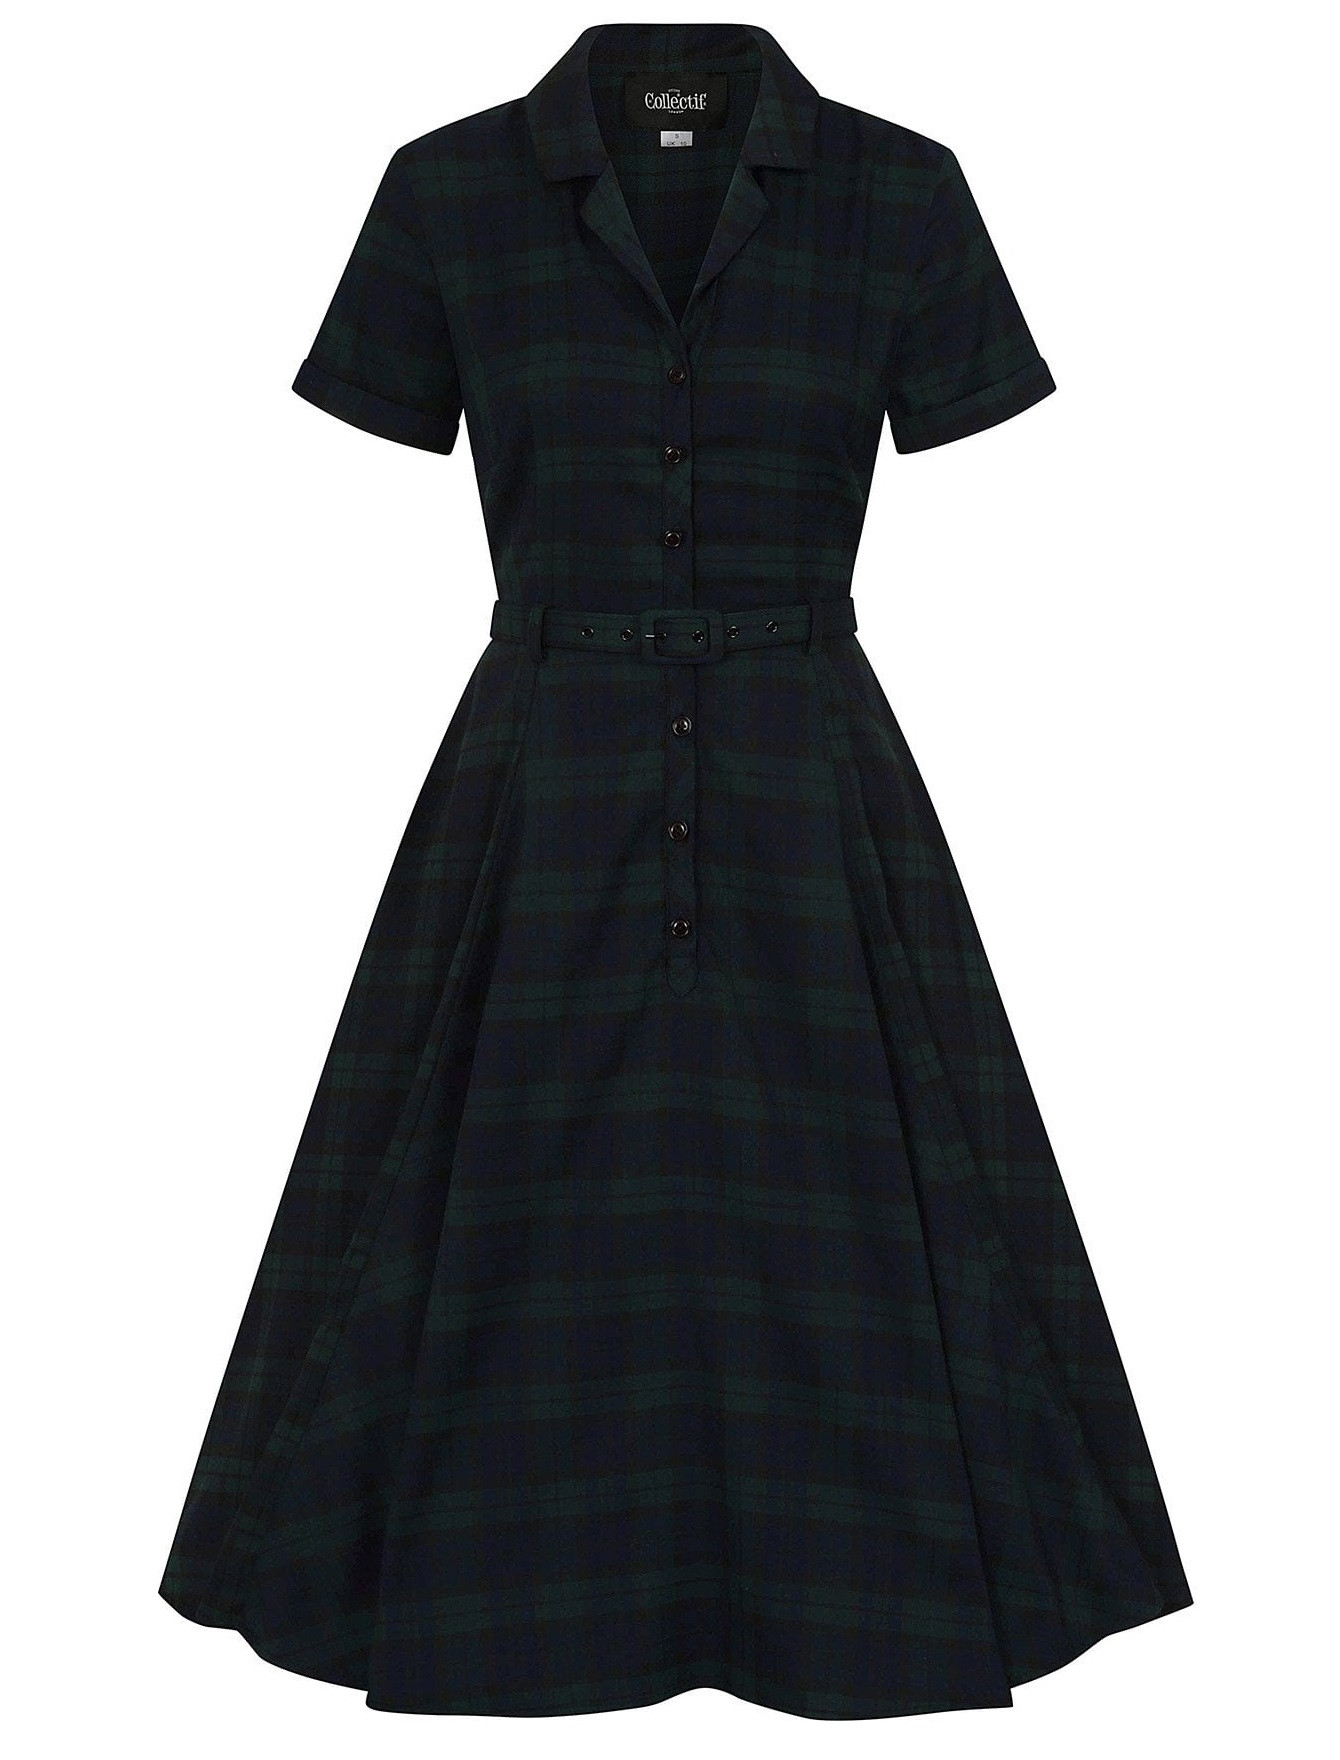 Collectif Caterina Blackwatch Check Dress